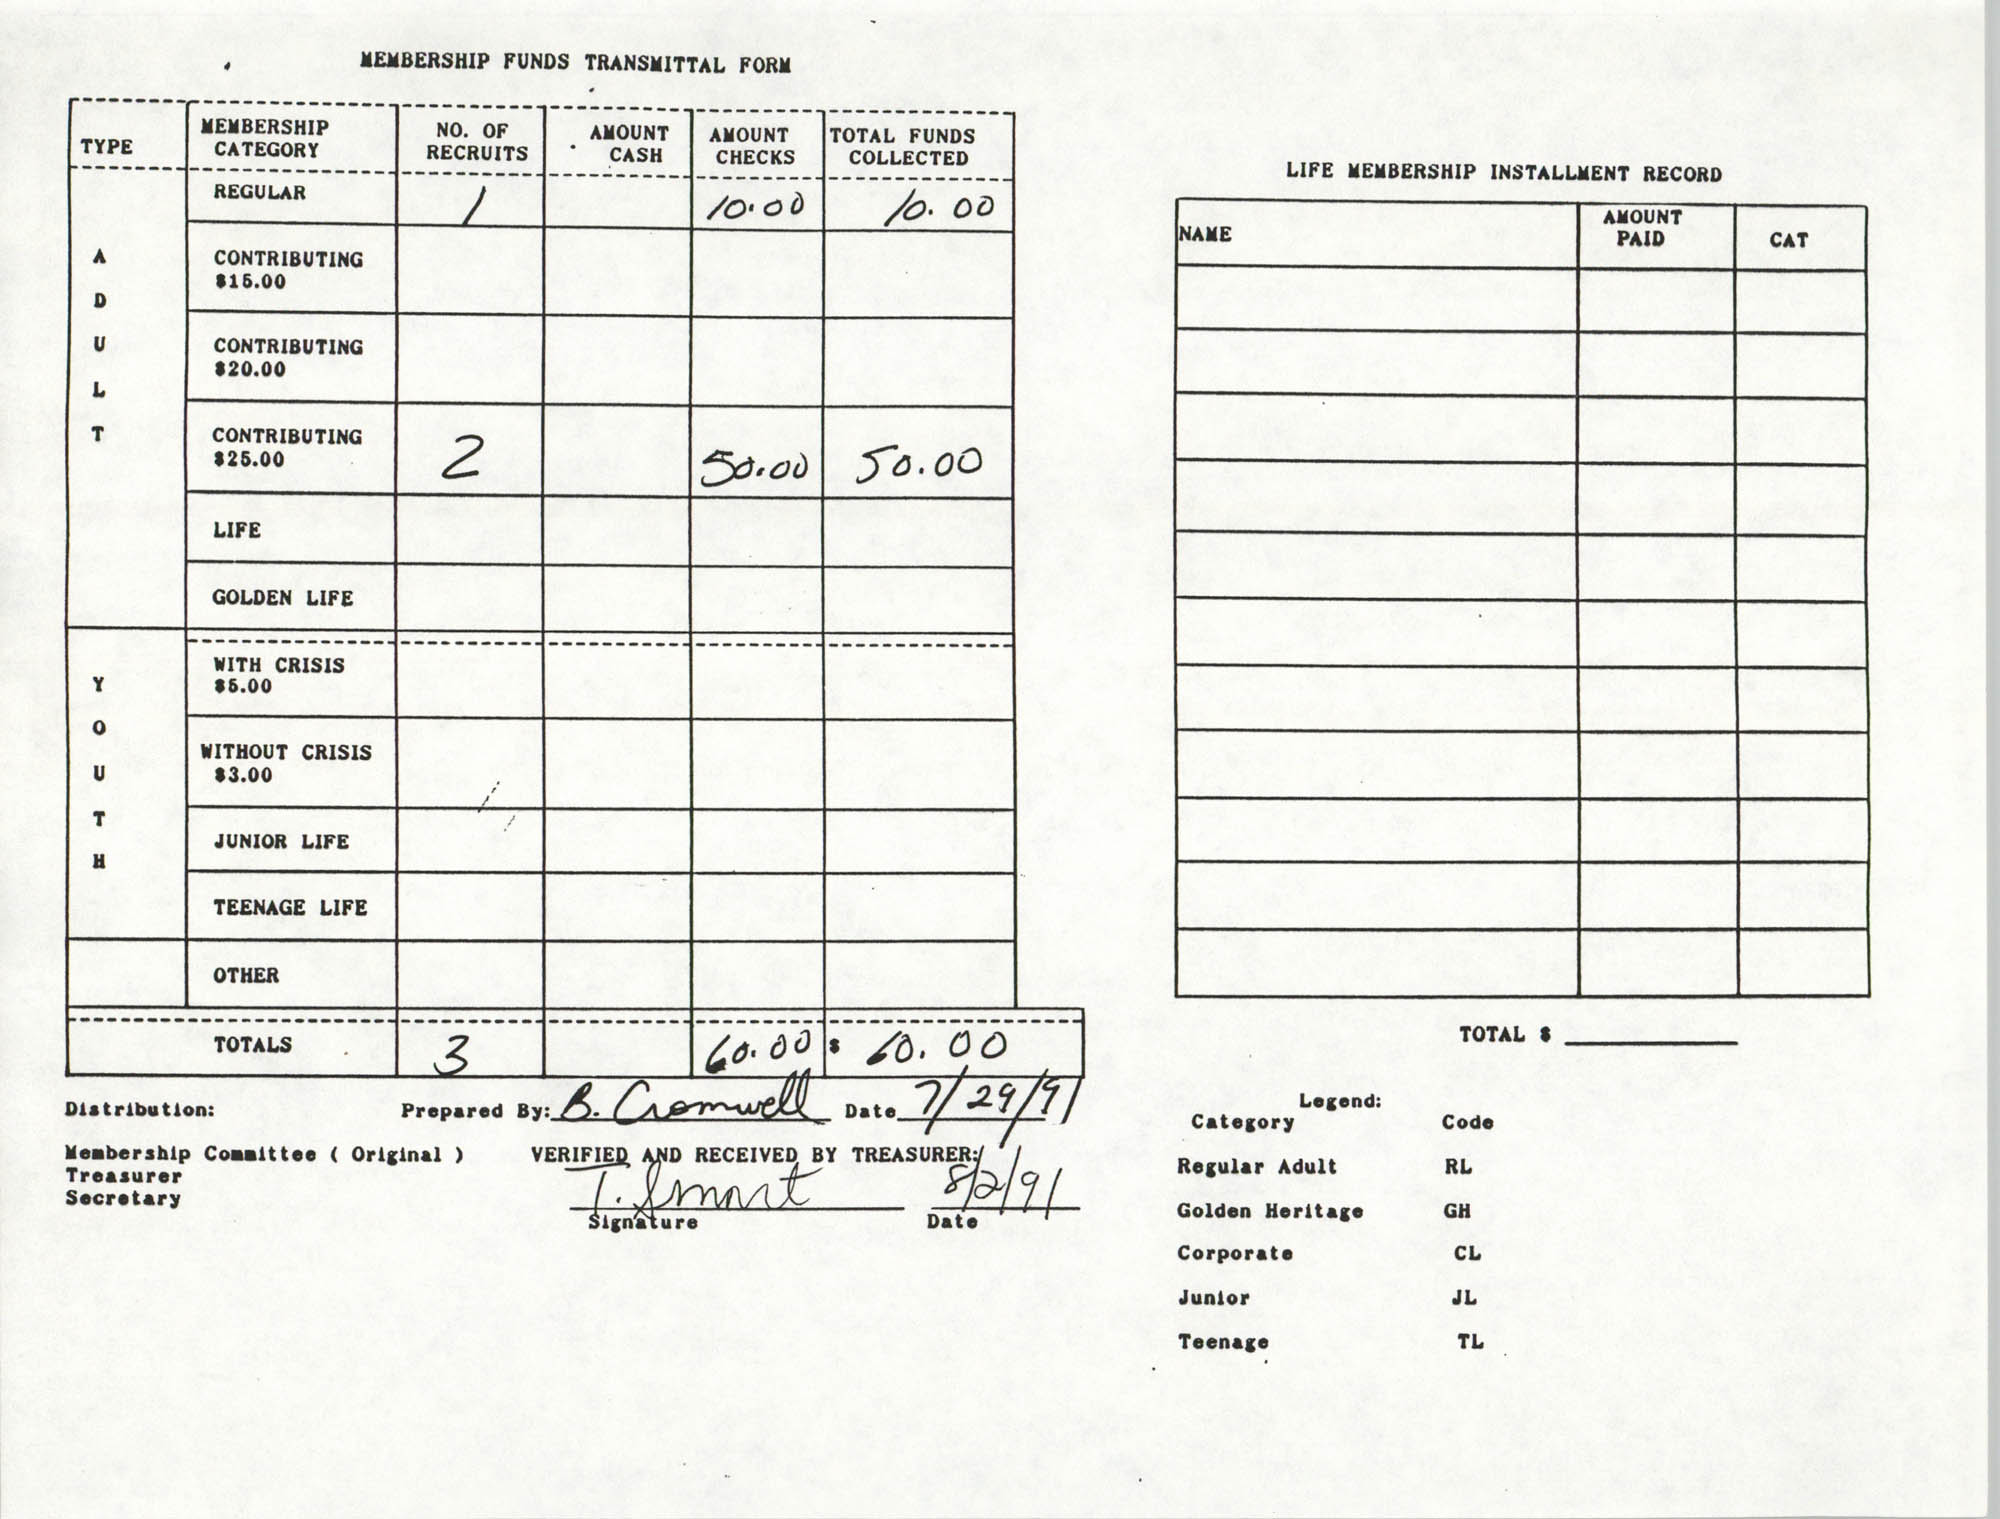 Charleston Branch of the NAACP Funds Transmittal Forms, July 1991, Page 9